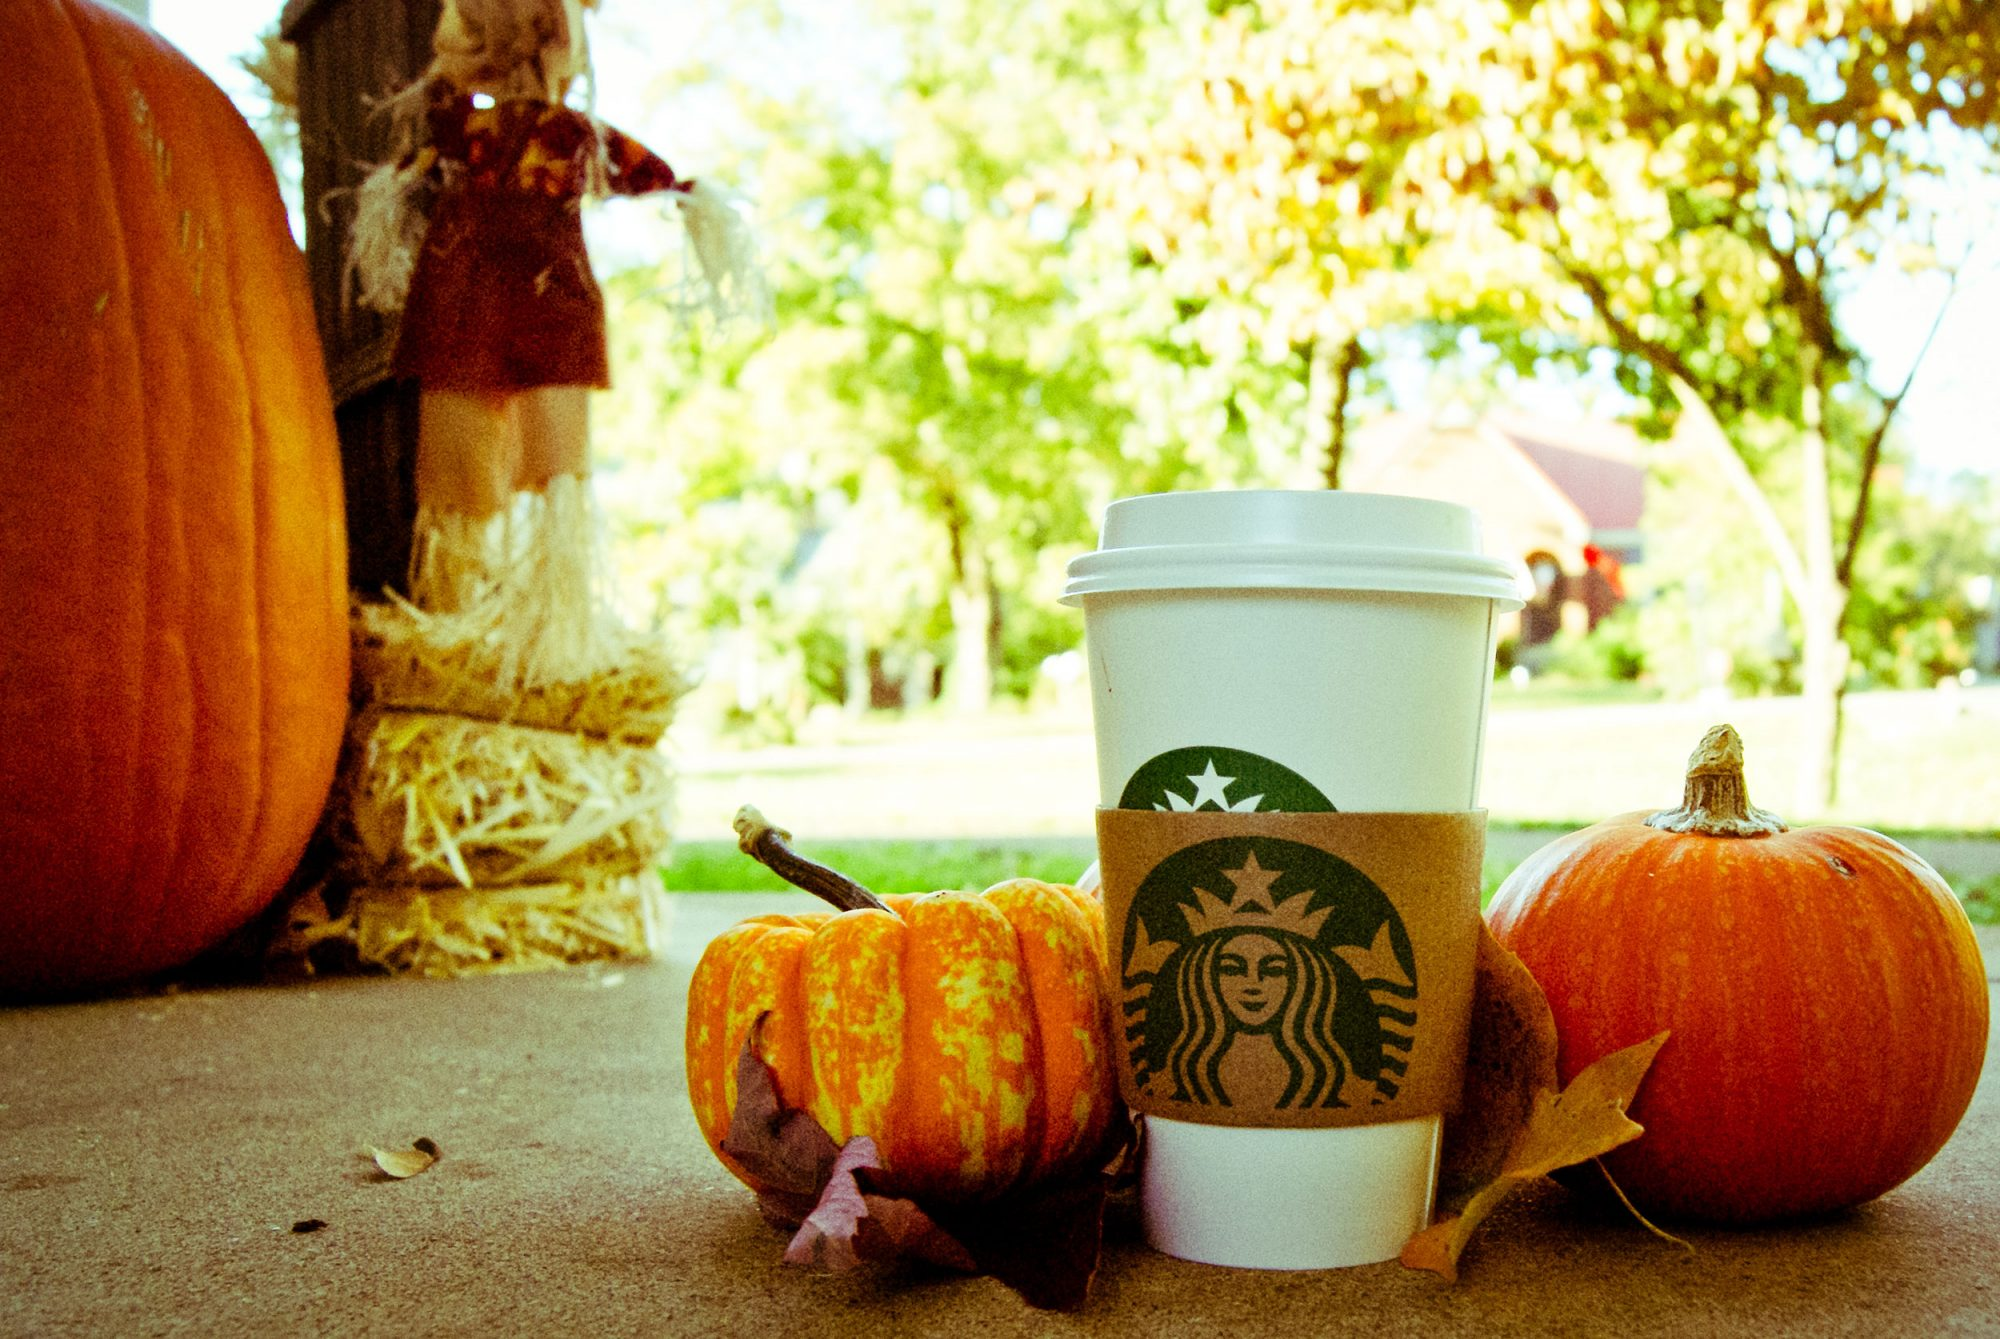 EC: How to Dress Like Pumpkin Spice for Halloween